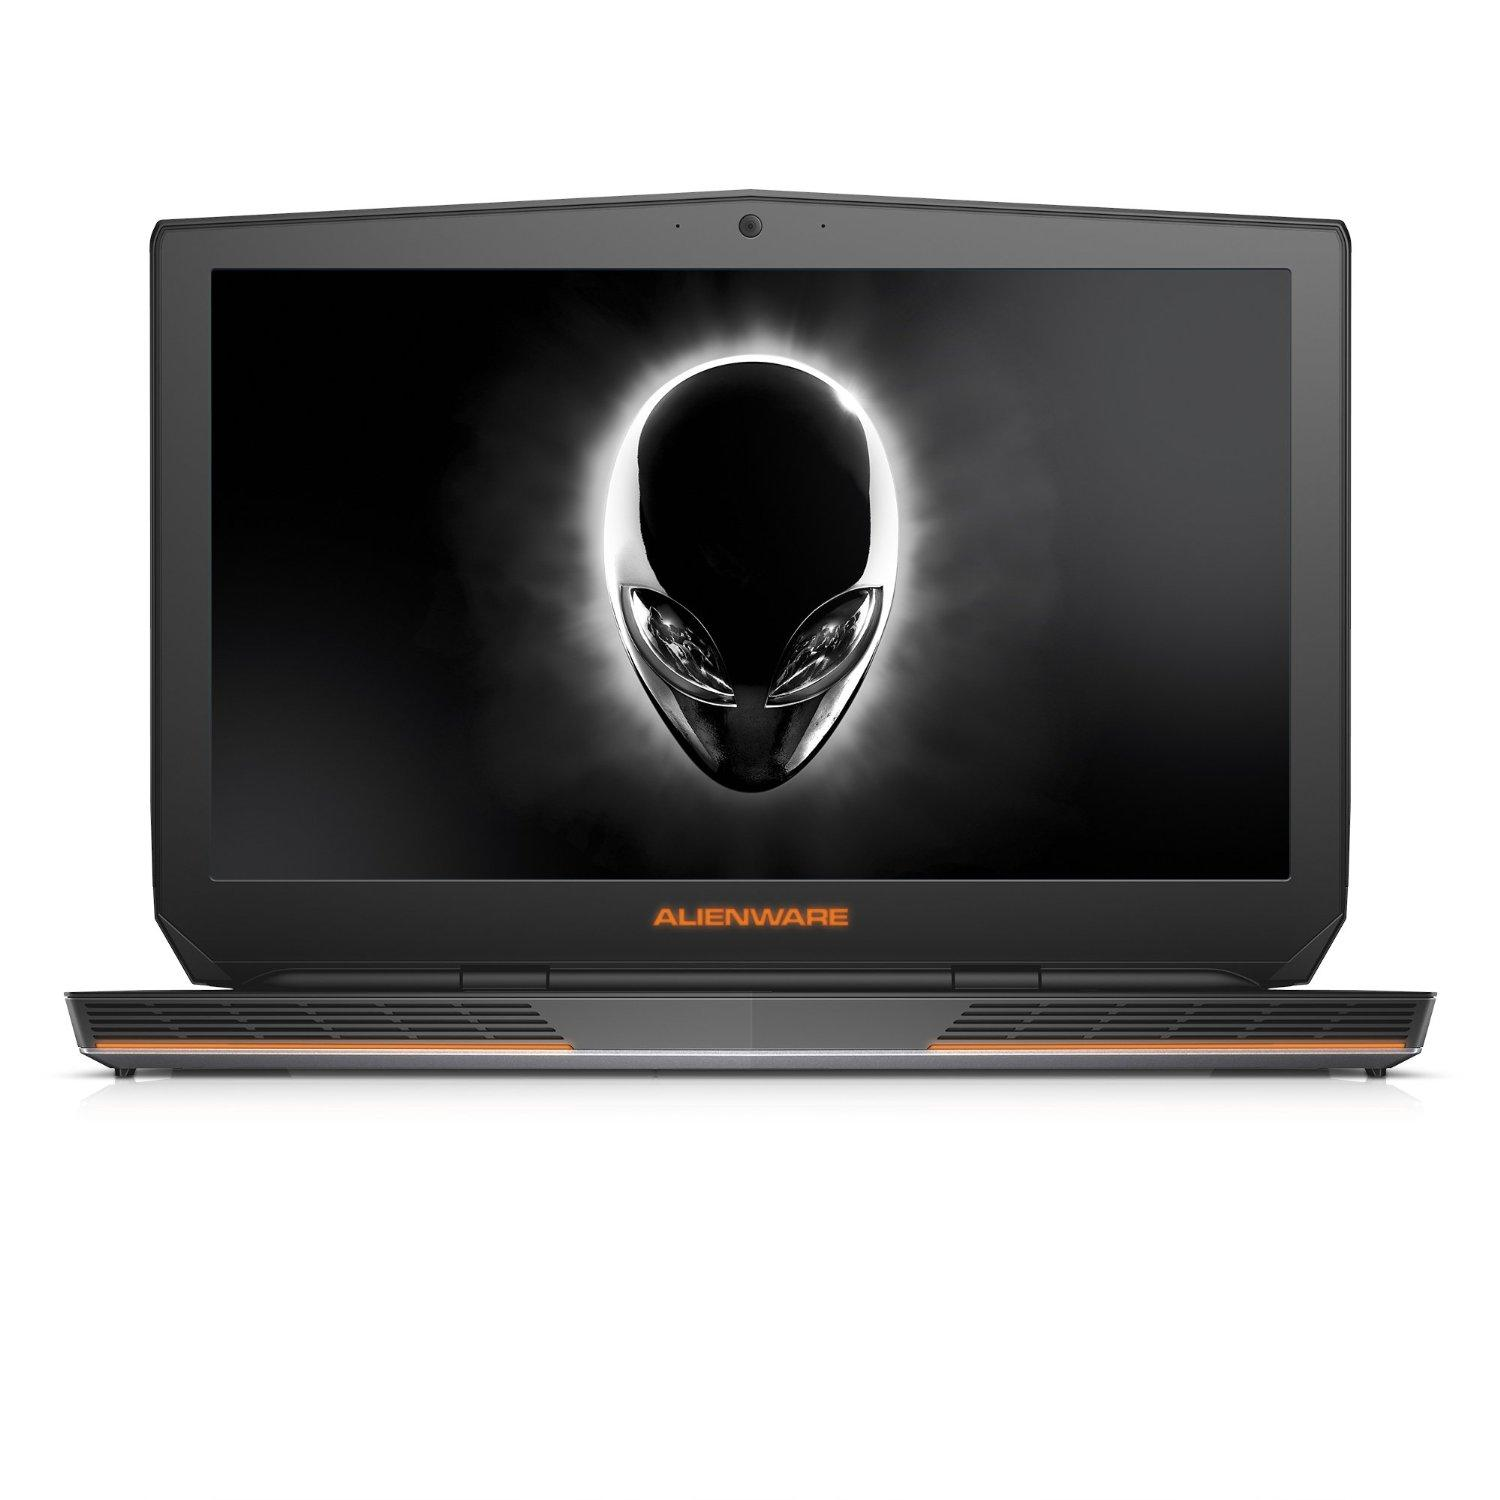 Alienware AW17R3-4175SLV 17.3 Inch FHD Laptop (6th Generation Intel Core i7, 16 GB RAM, 1 TB HDD + 256 GB SSD)